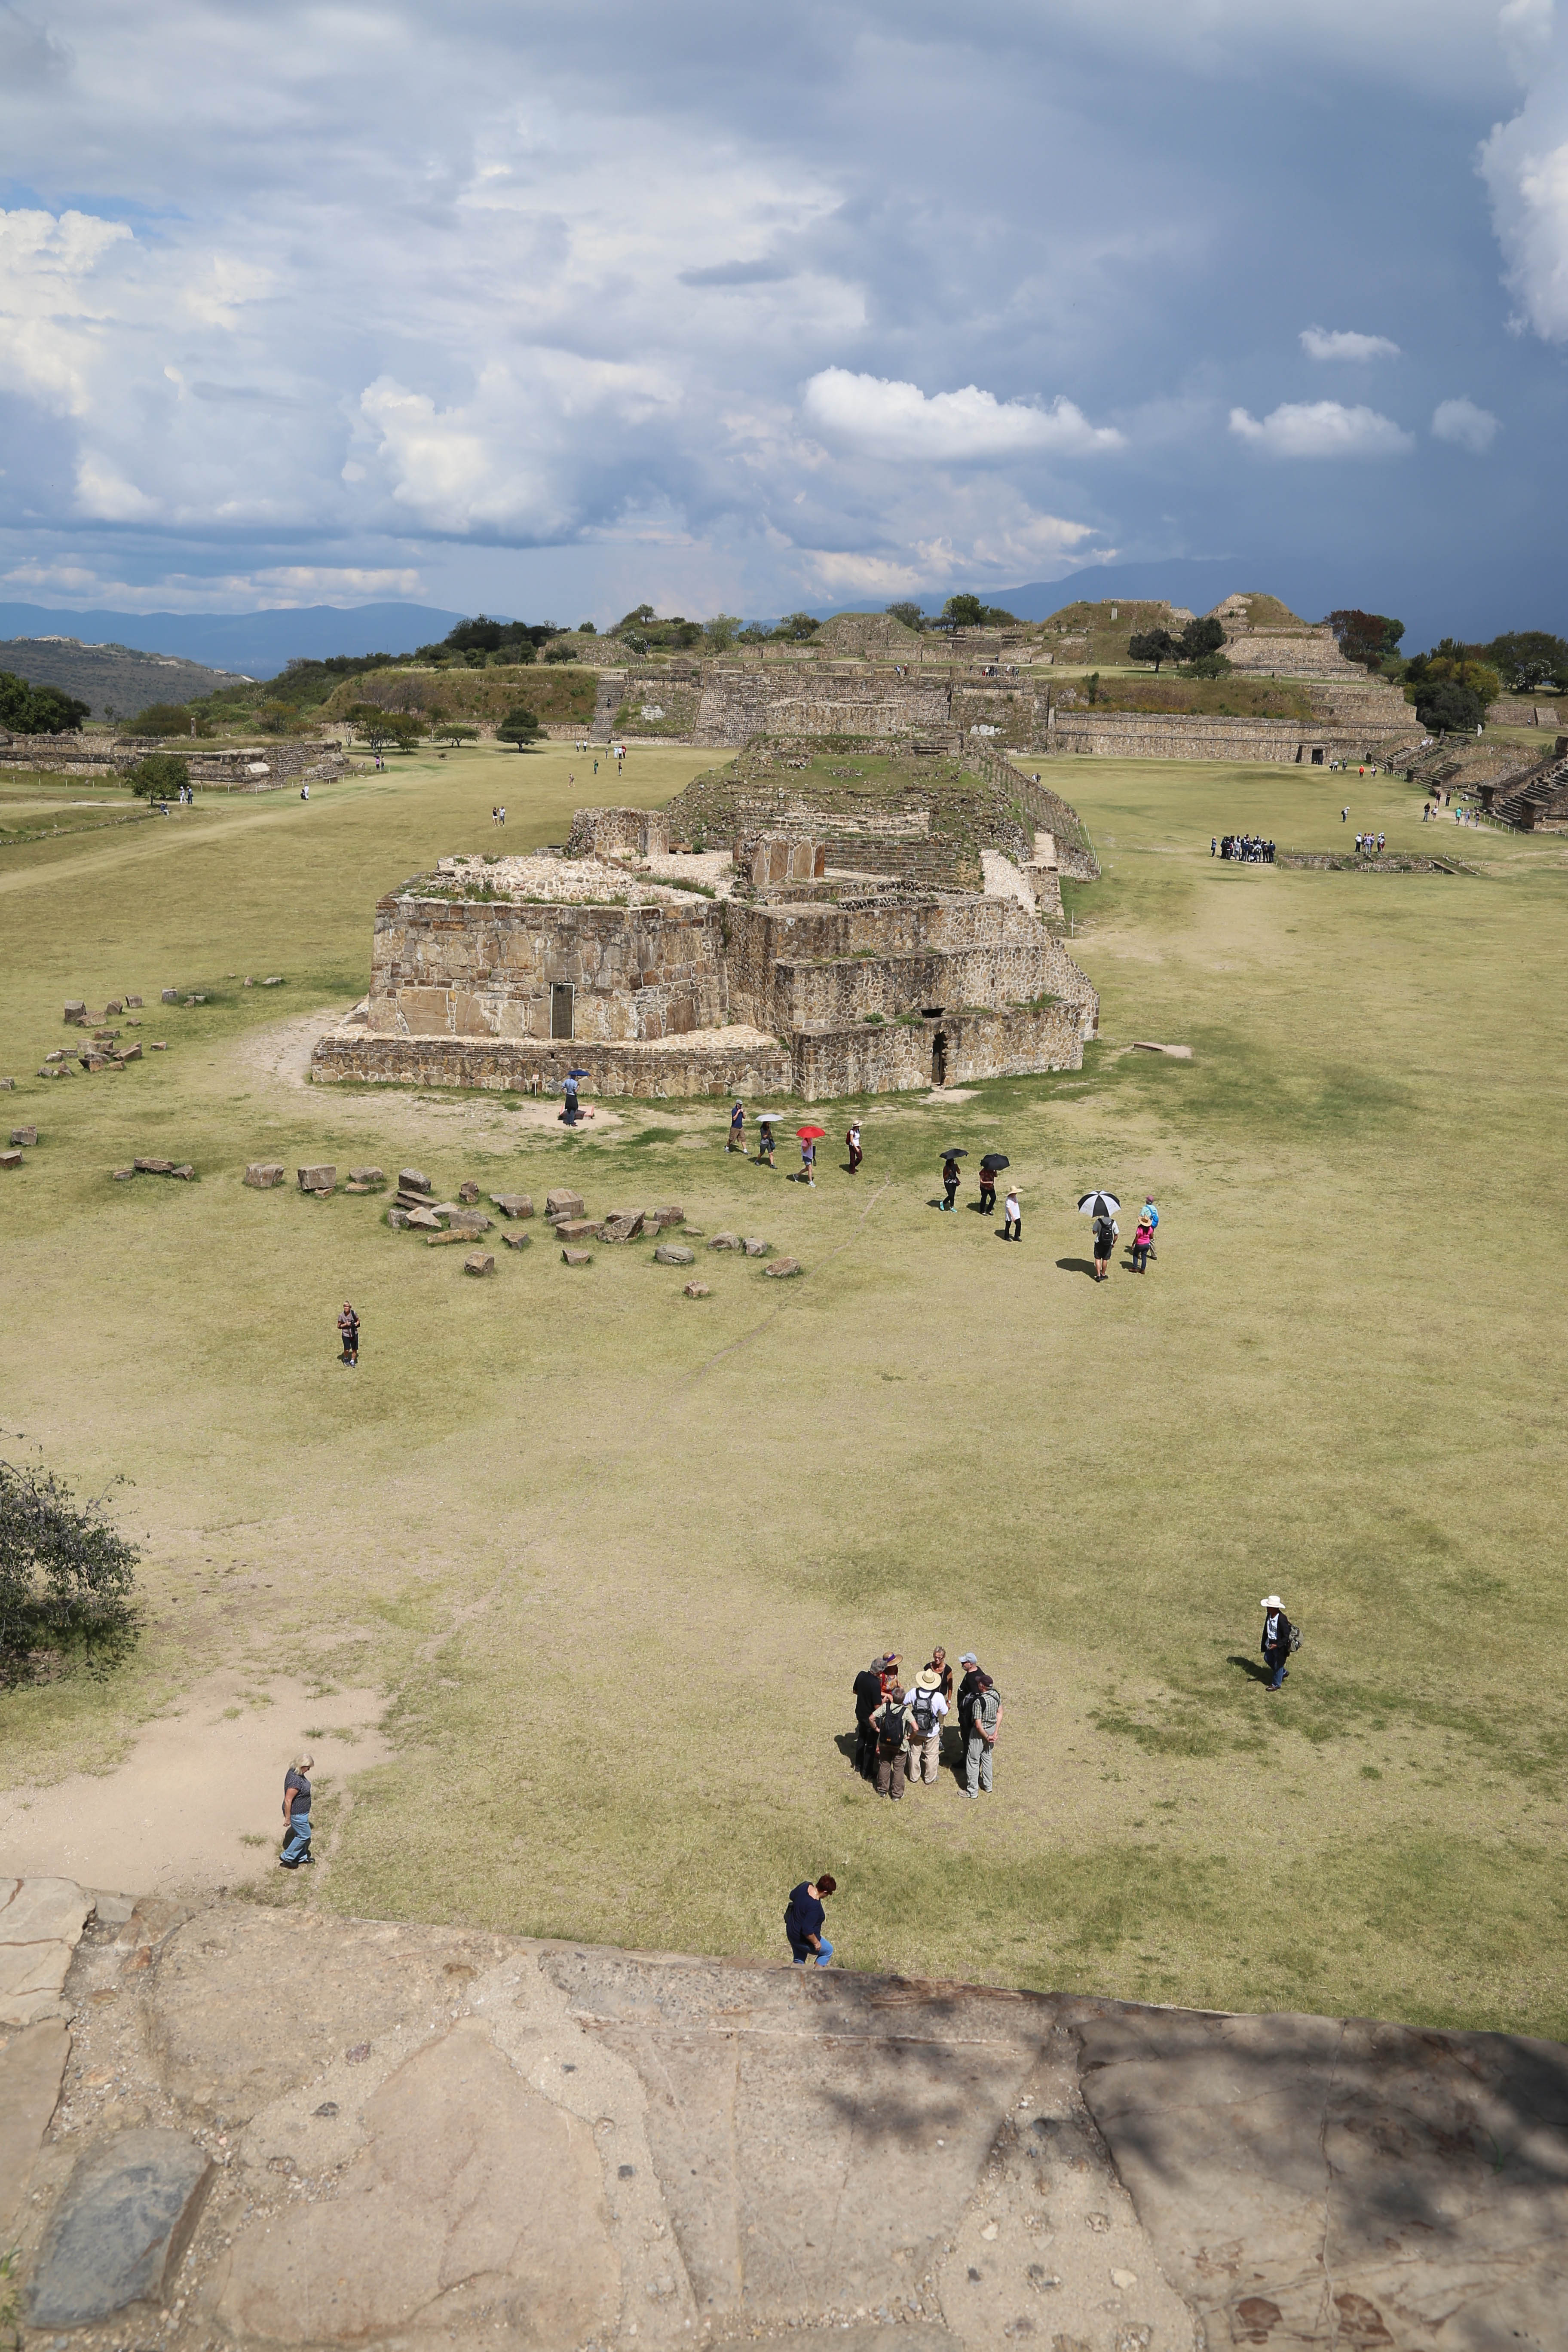 The Great Plaza is thought to have been a place for markets and commerce to take place, among other activity at Monte Alban.